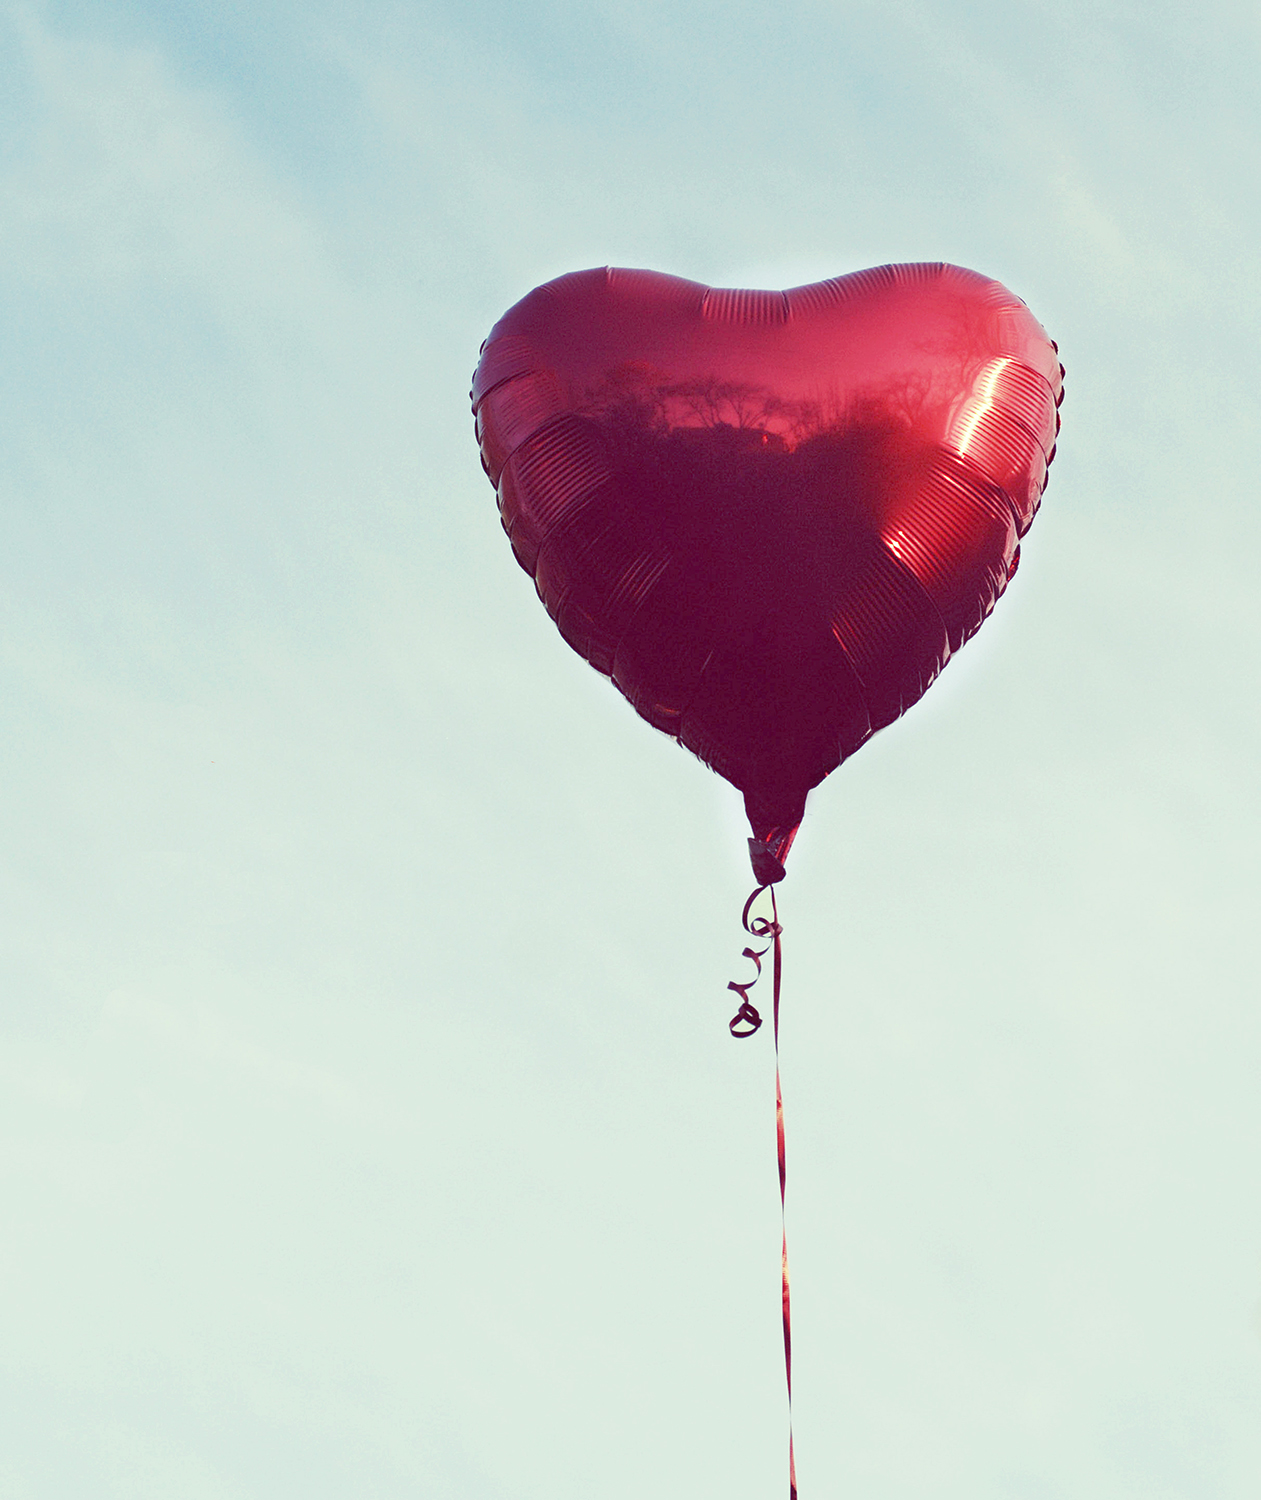 red-heart-balloon-blue-sky